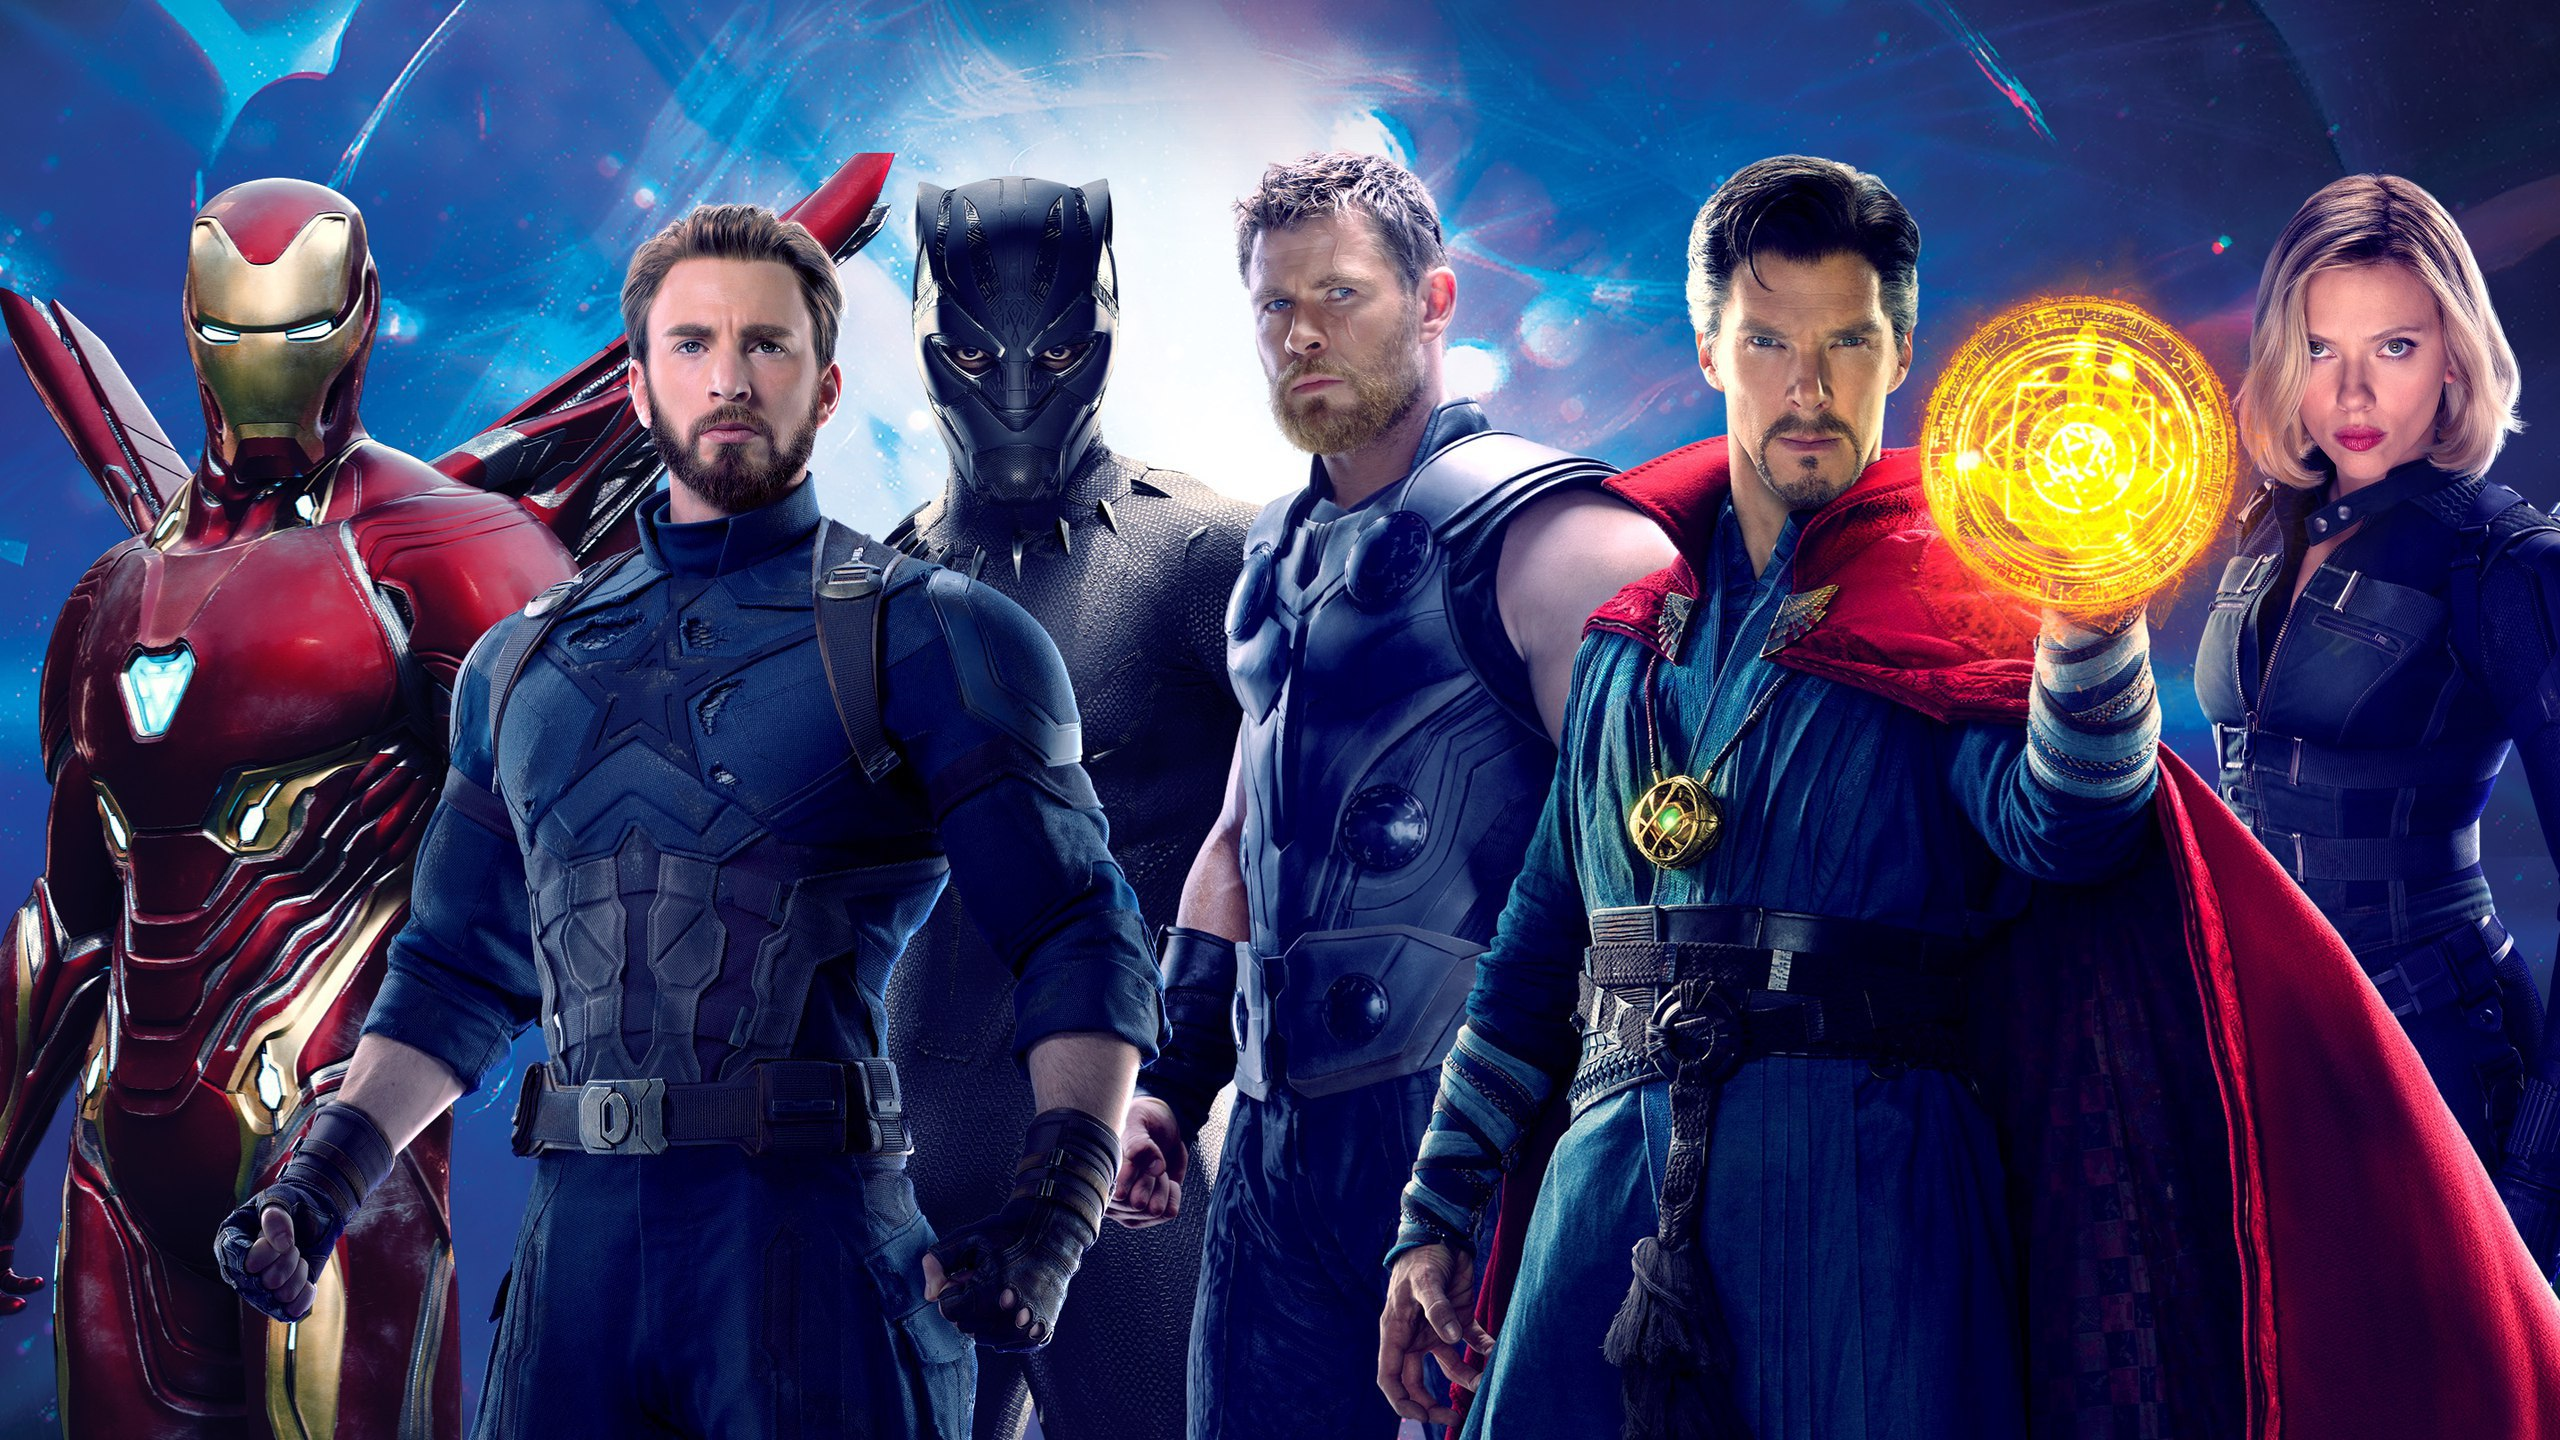 Wallpaper 4k 2018 Avengers Infinity War 4k 2018 Movies Wallpapers Artist Wallpapers Avengers Infinity War Wallpapers Black Panther Wallpapers Black Widow Wallpapers Captain America Wallpapers Chadwick Boseman Wallpapers Chris Evans Wallpapers